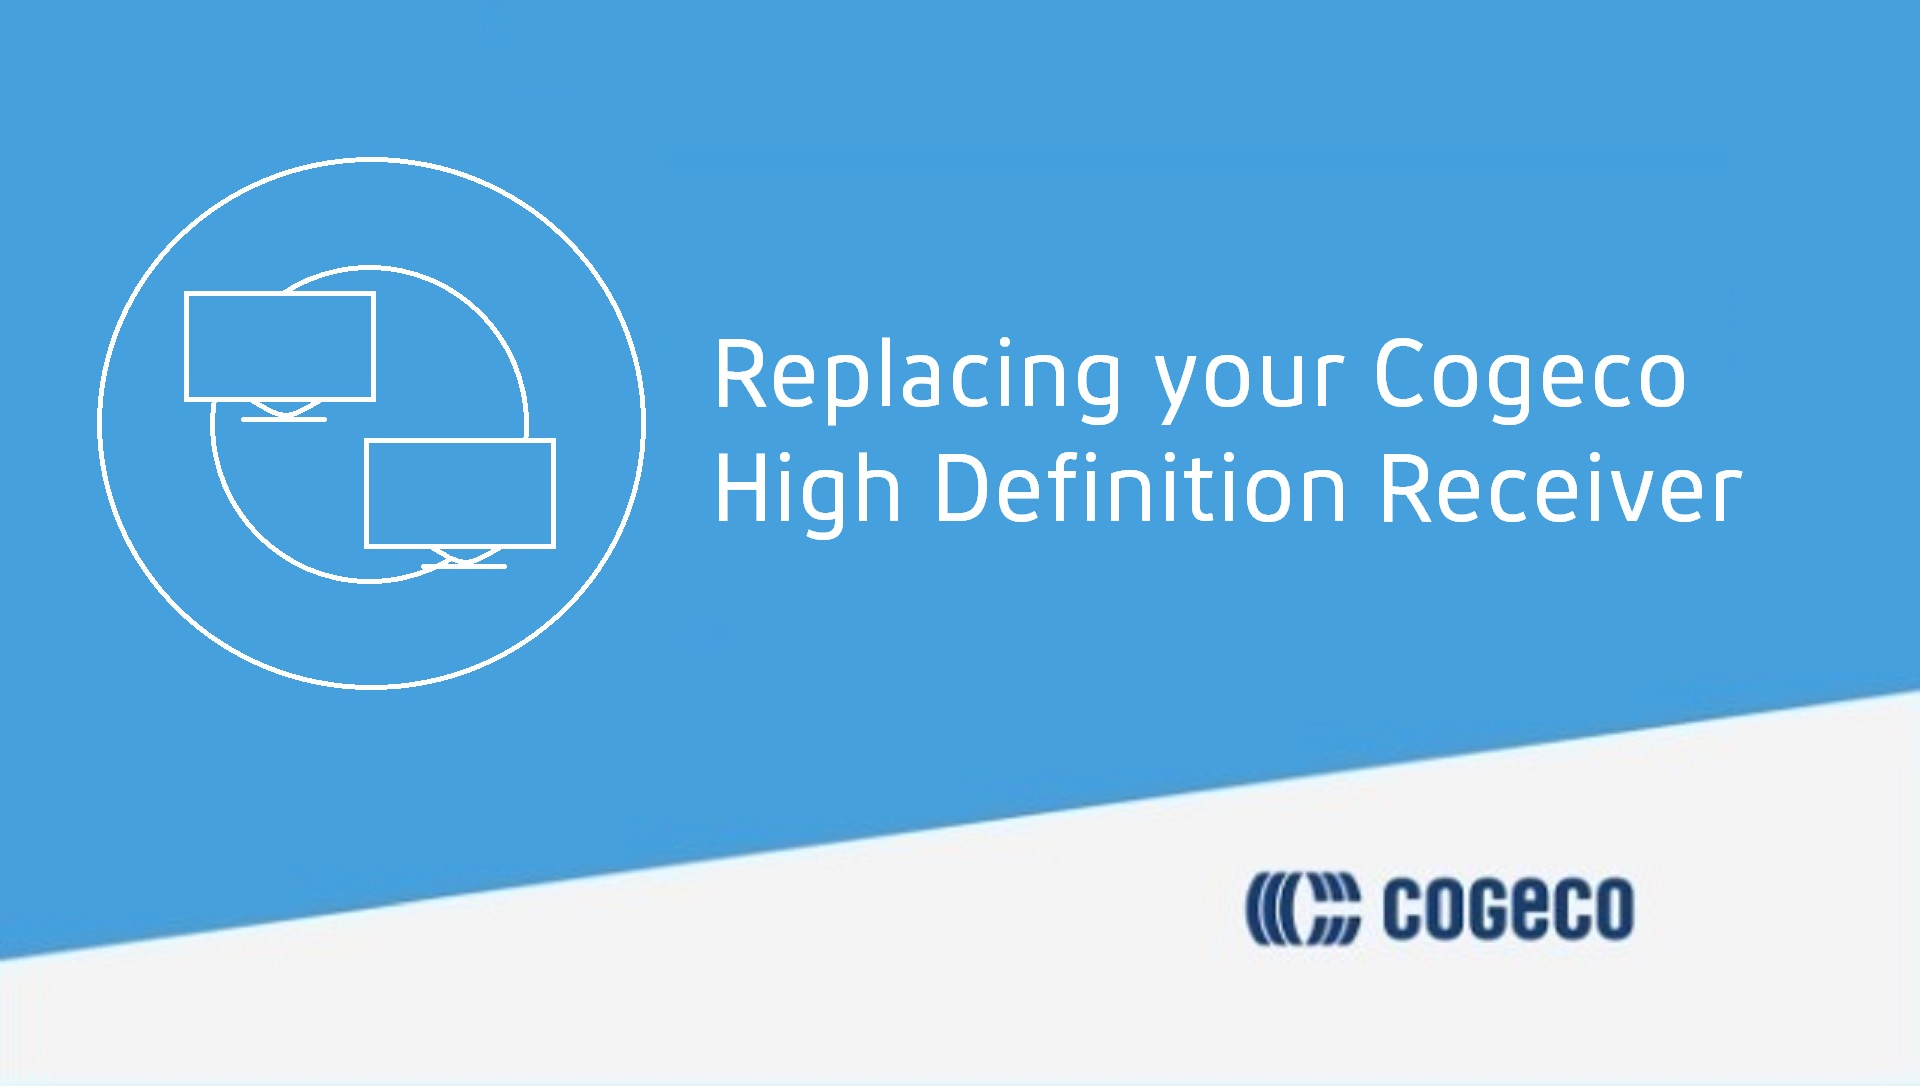 How do I replace my Cogeco HD receiver?